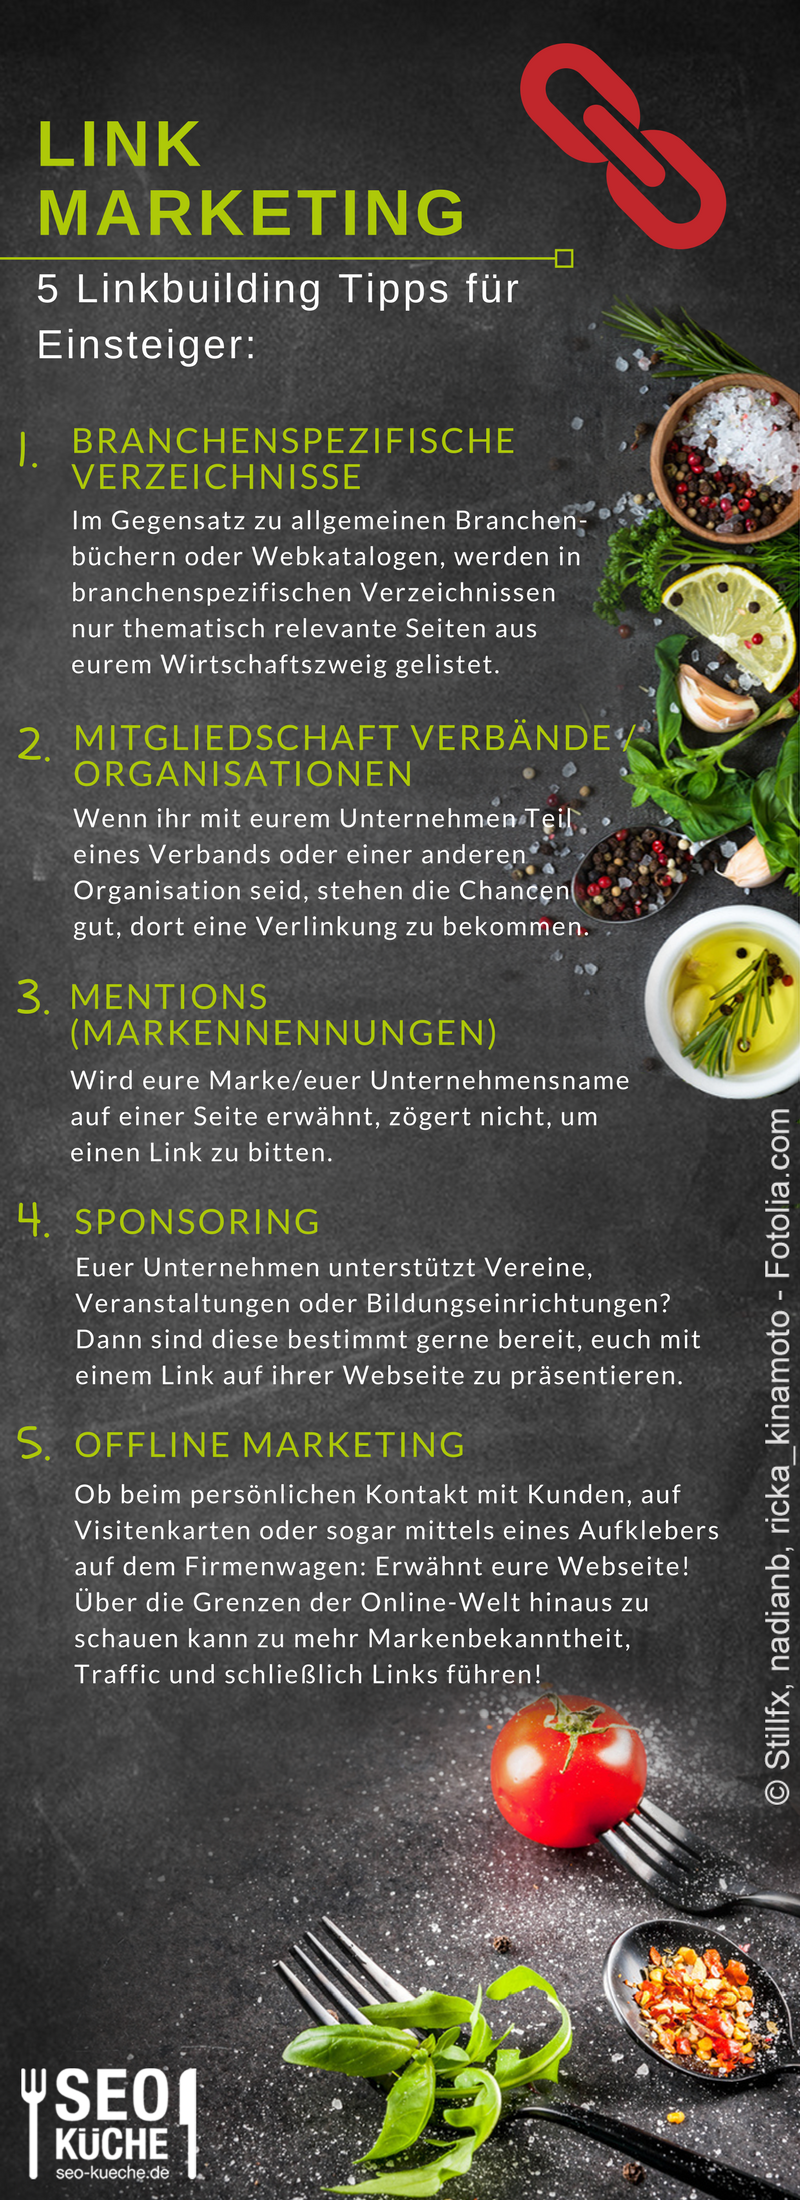 Unsere Top-5-Linkbuilding Tipps - SEO-Küche.de | Content marketing ...